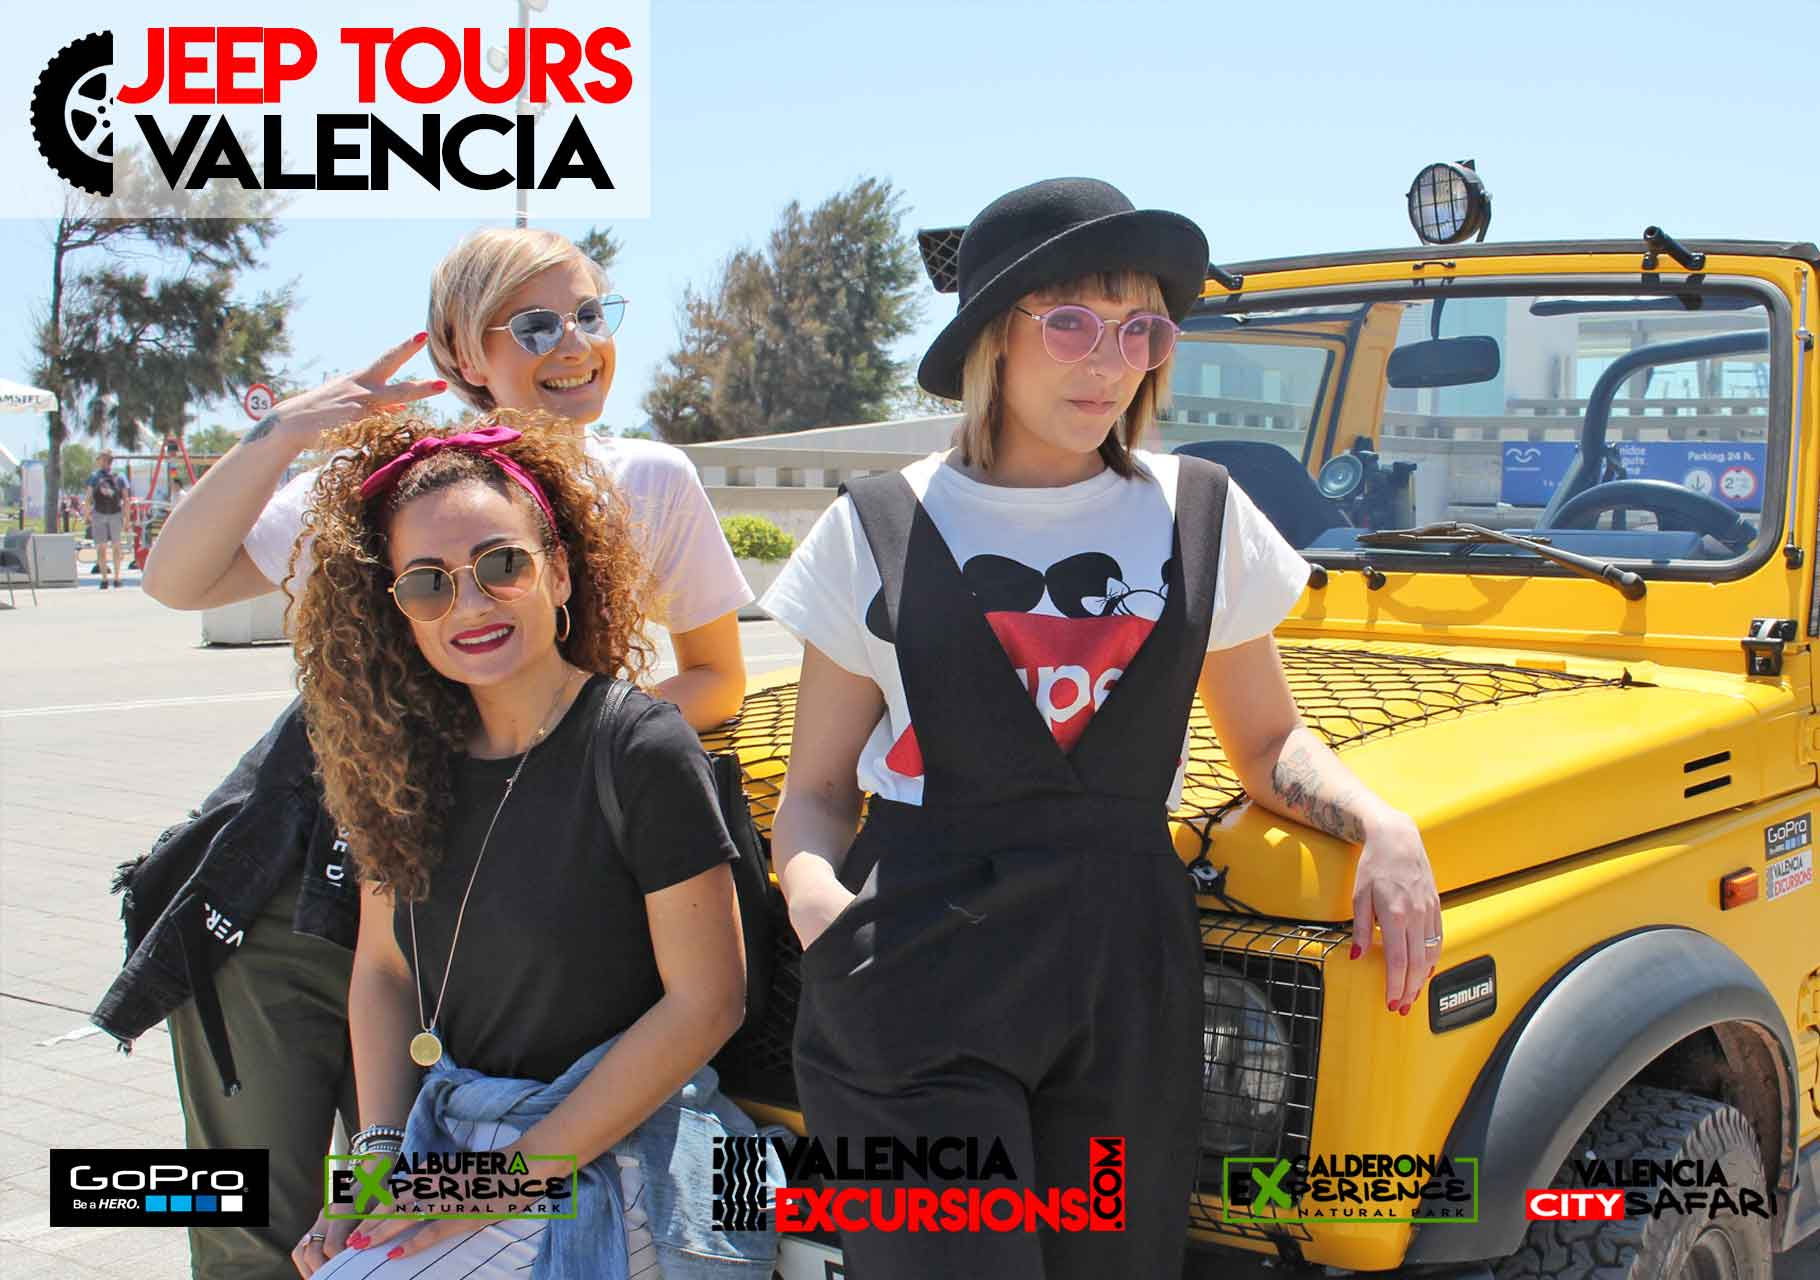 Valencia Excursions jeep tours